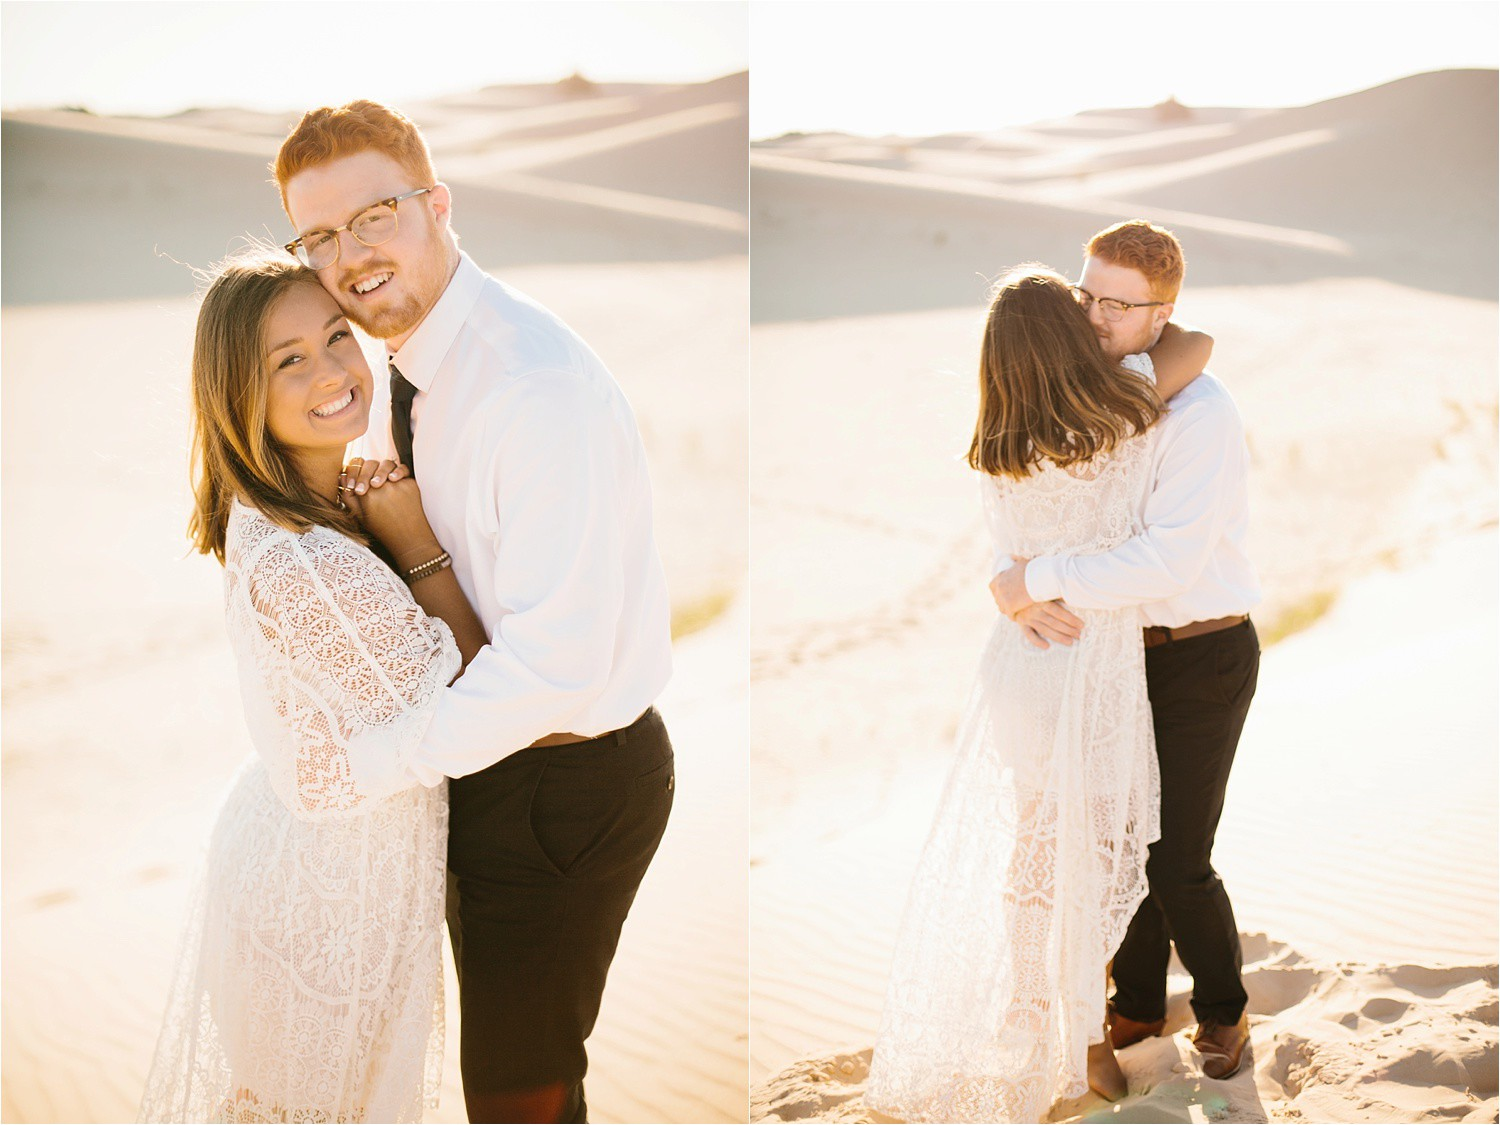 Lauren + Jacob __ a monahans sand dunes engagement session at sunrise by North Texas Wedding Photographer, Rachel Meagan Photography __ 34